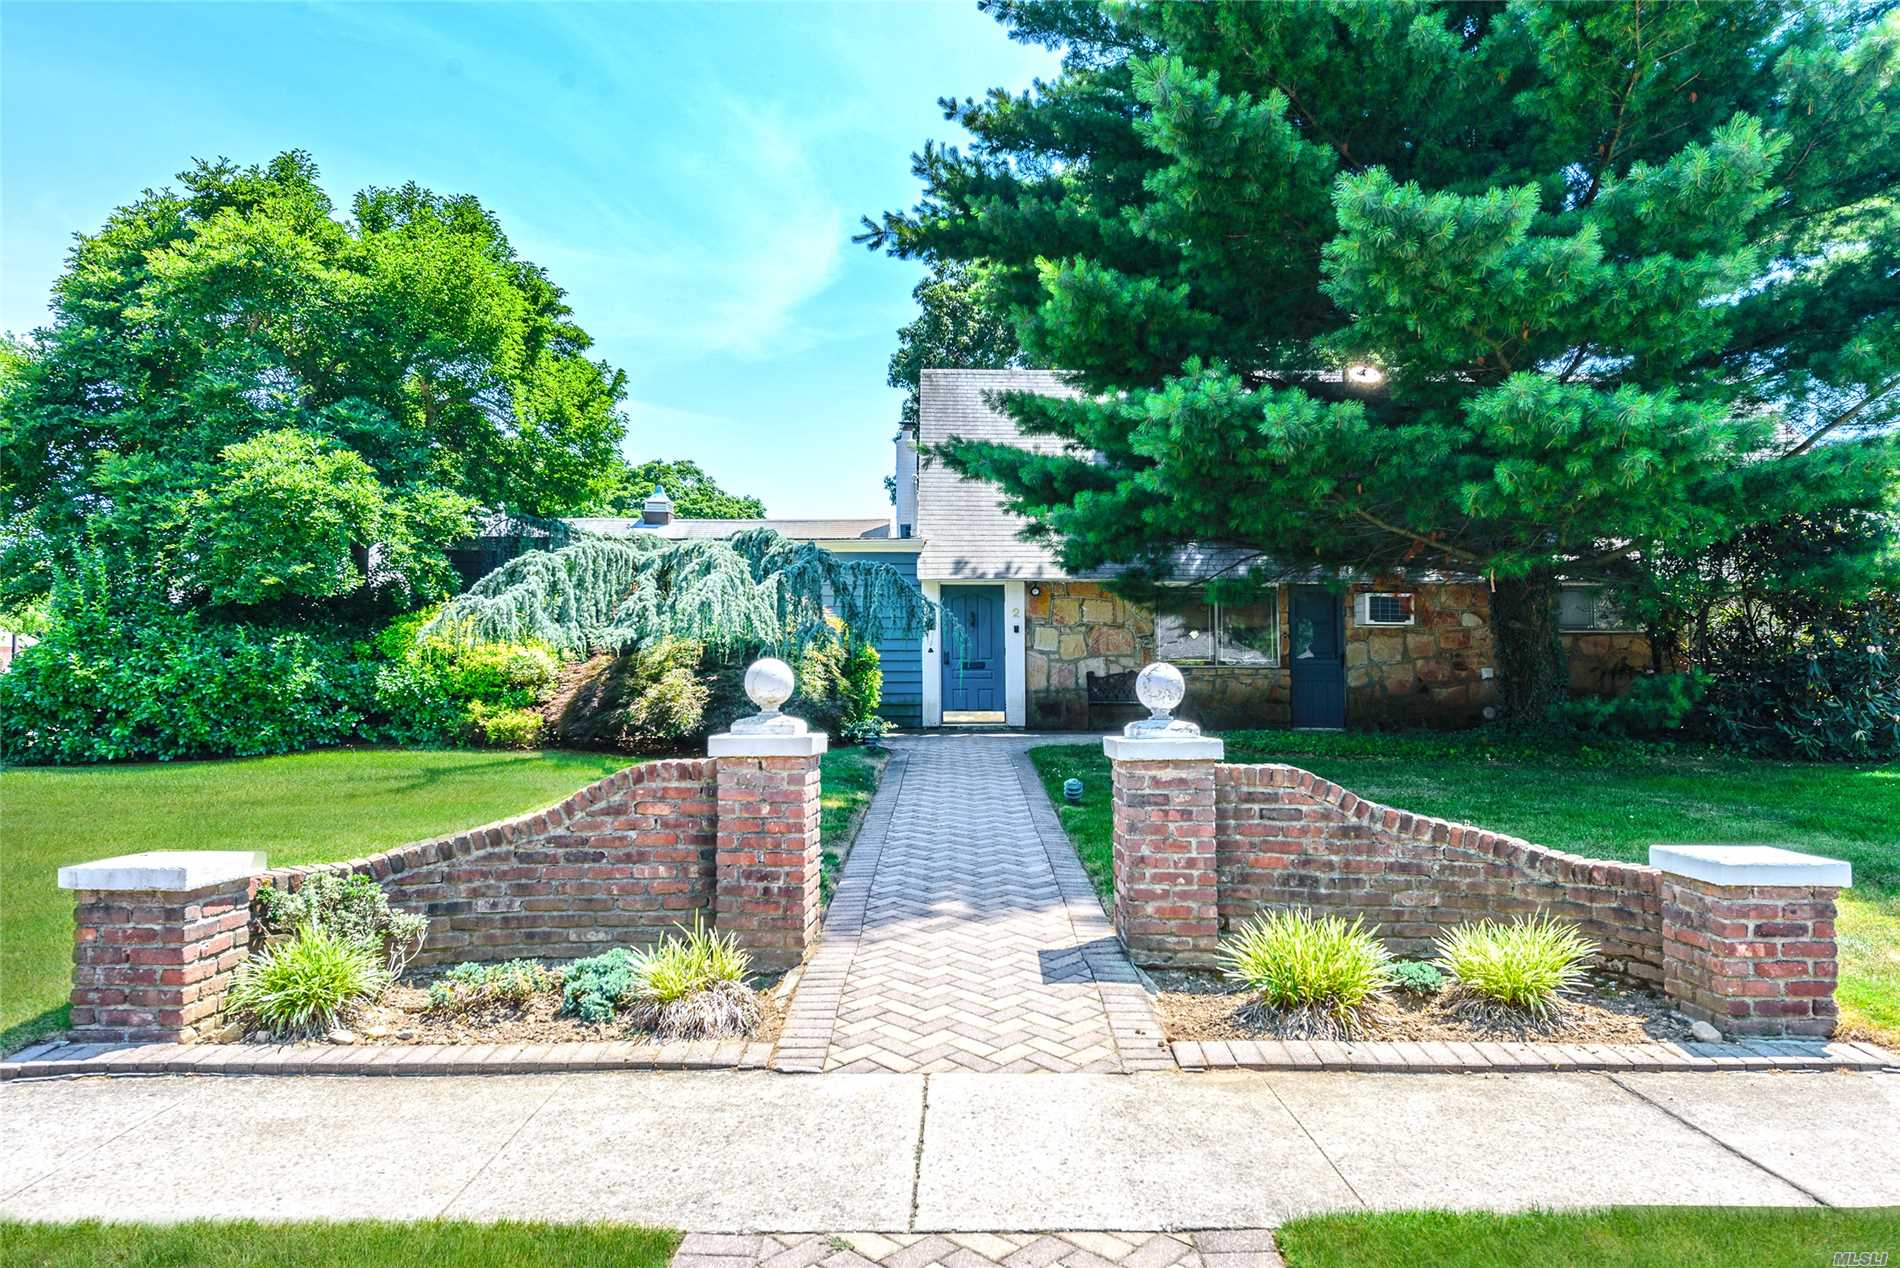 Roslyn Heights. Roslyn Country Club. 5 Bedroom, 3.5 Bath Expanded Ranch Home On Almost 1/2 Acre. With 3 Car Garage.